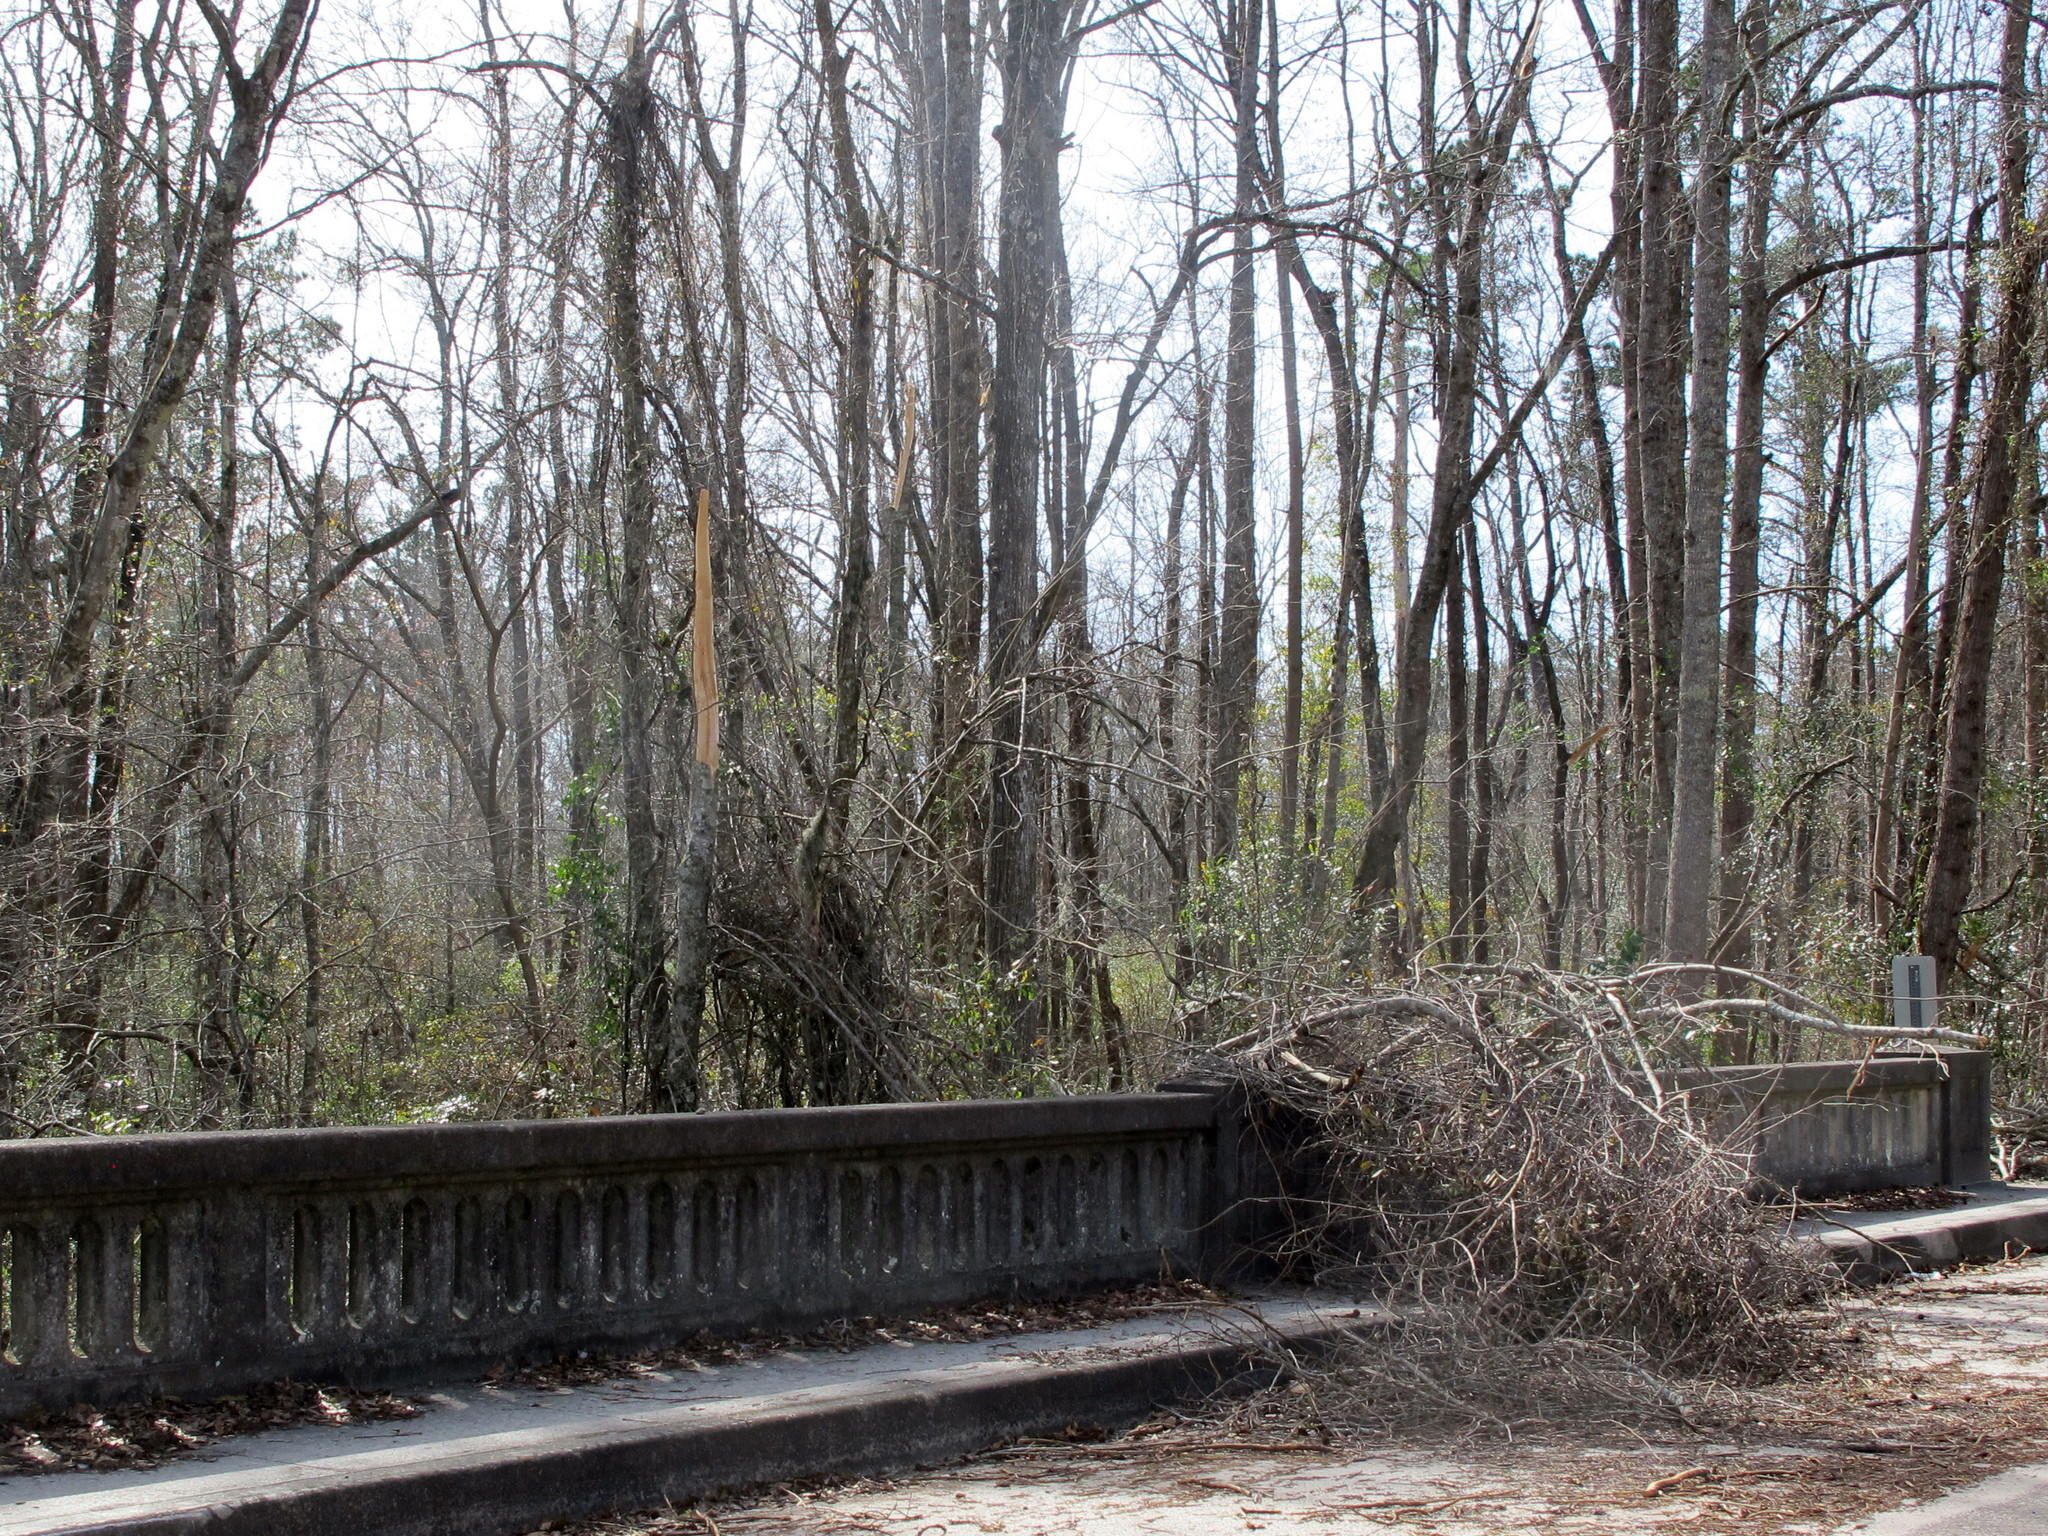 Trees near Lodge, S.C., show damage from the February ice storm.